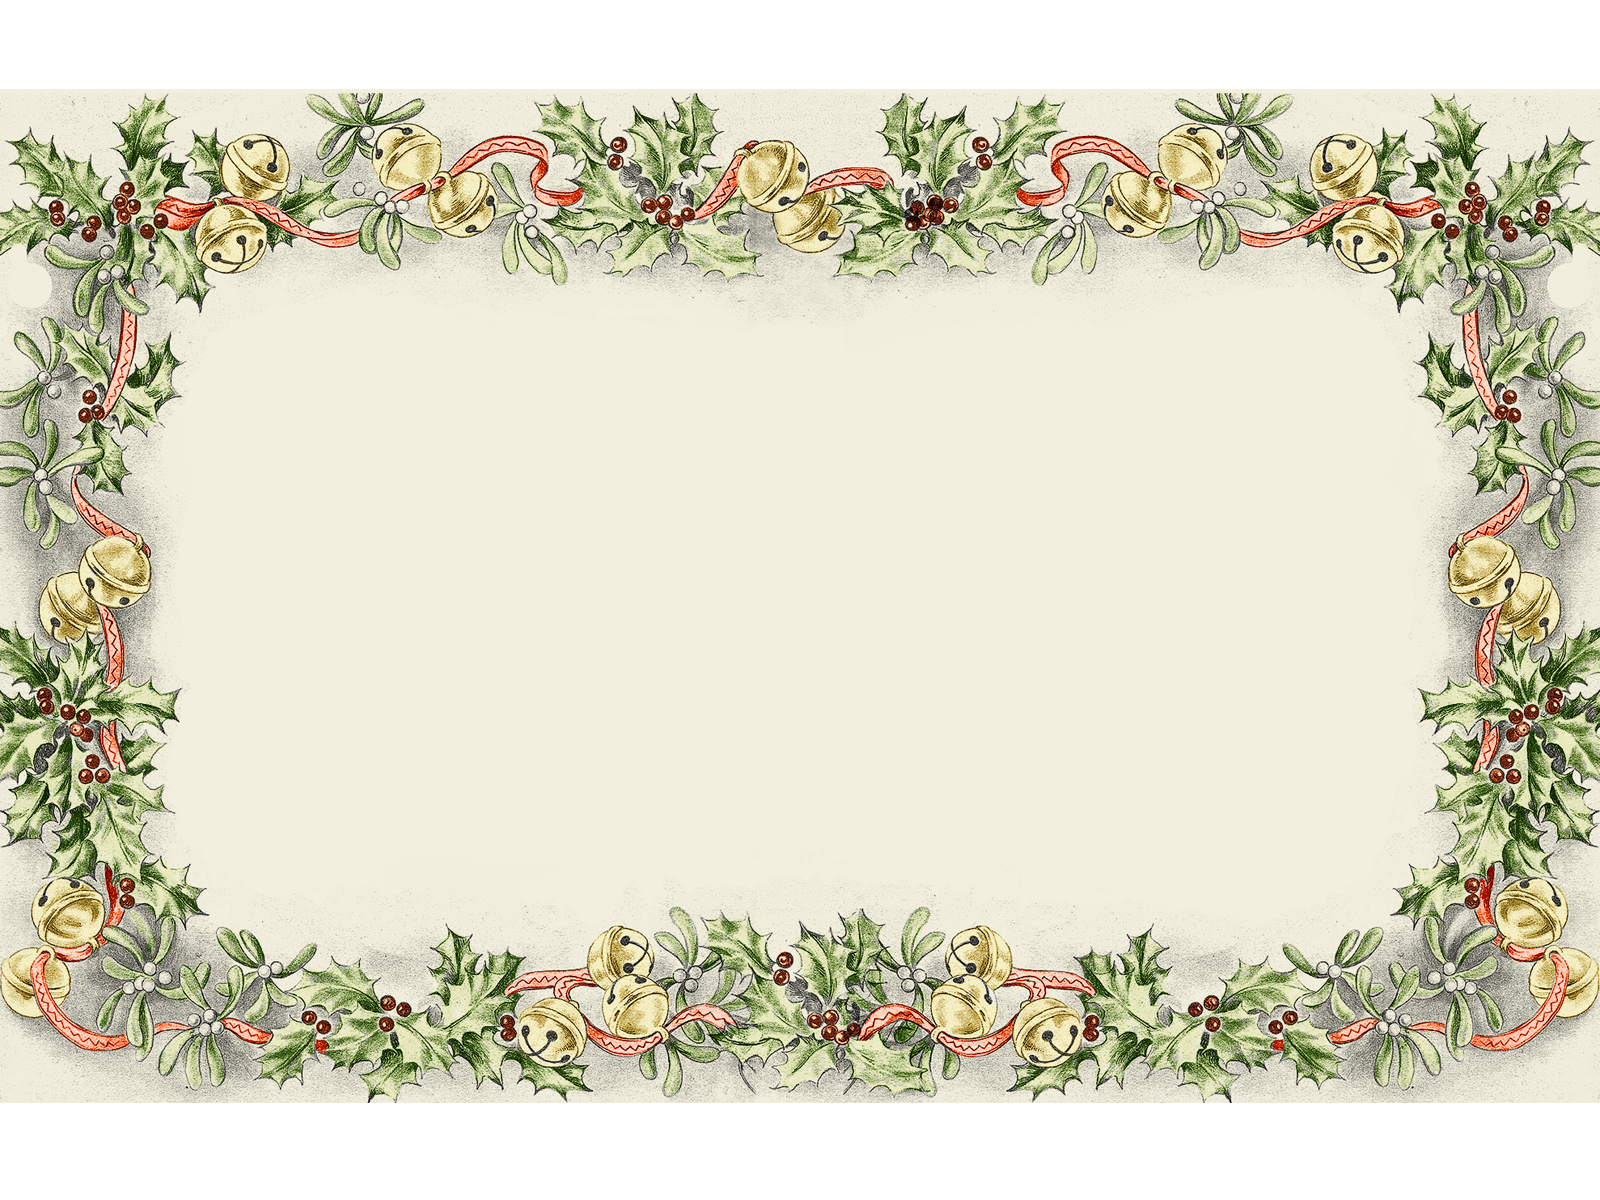 13 free photoshop christmas frames and borders images phot card from user n4tlit in yandexcollections